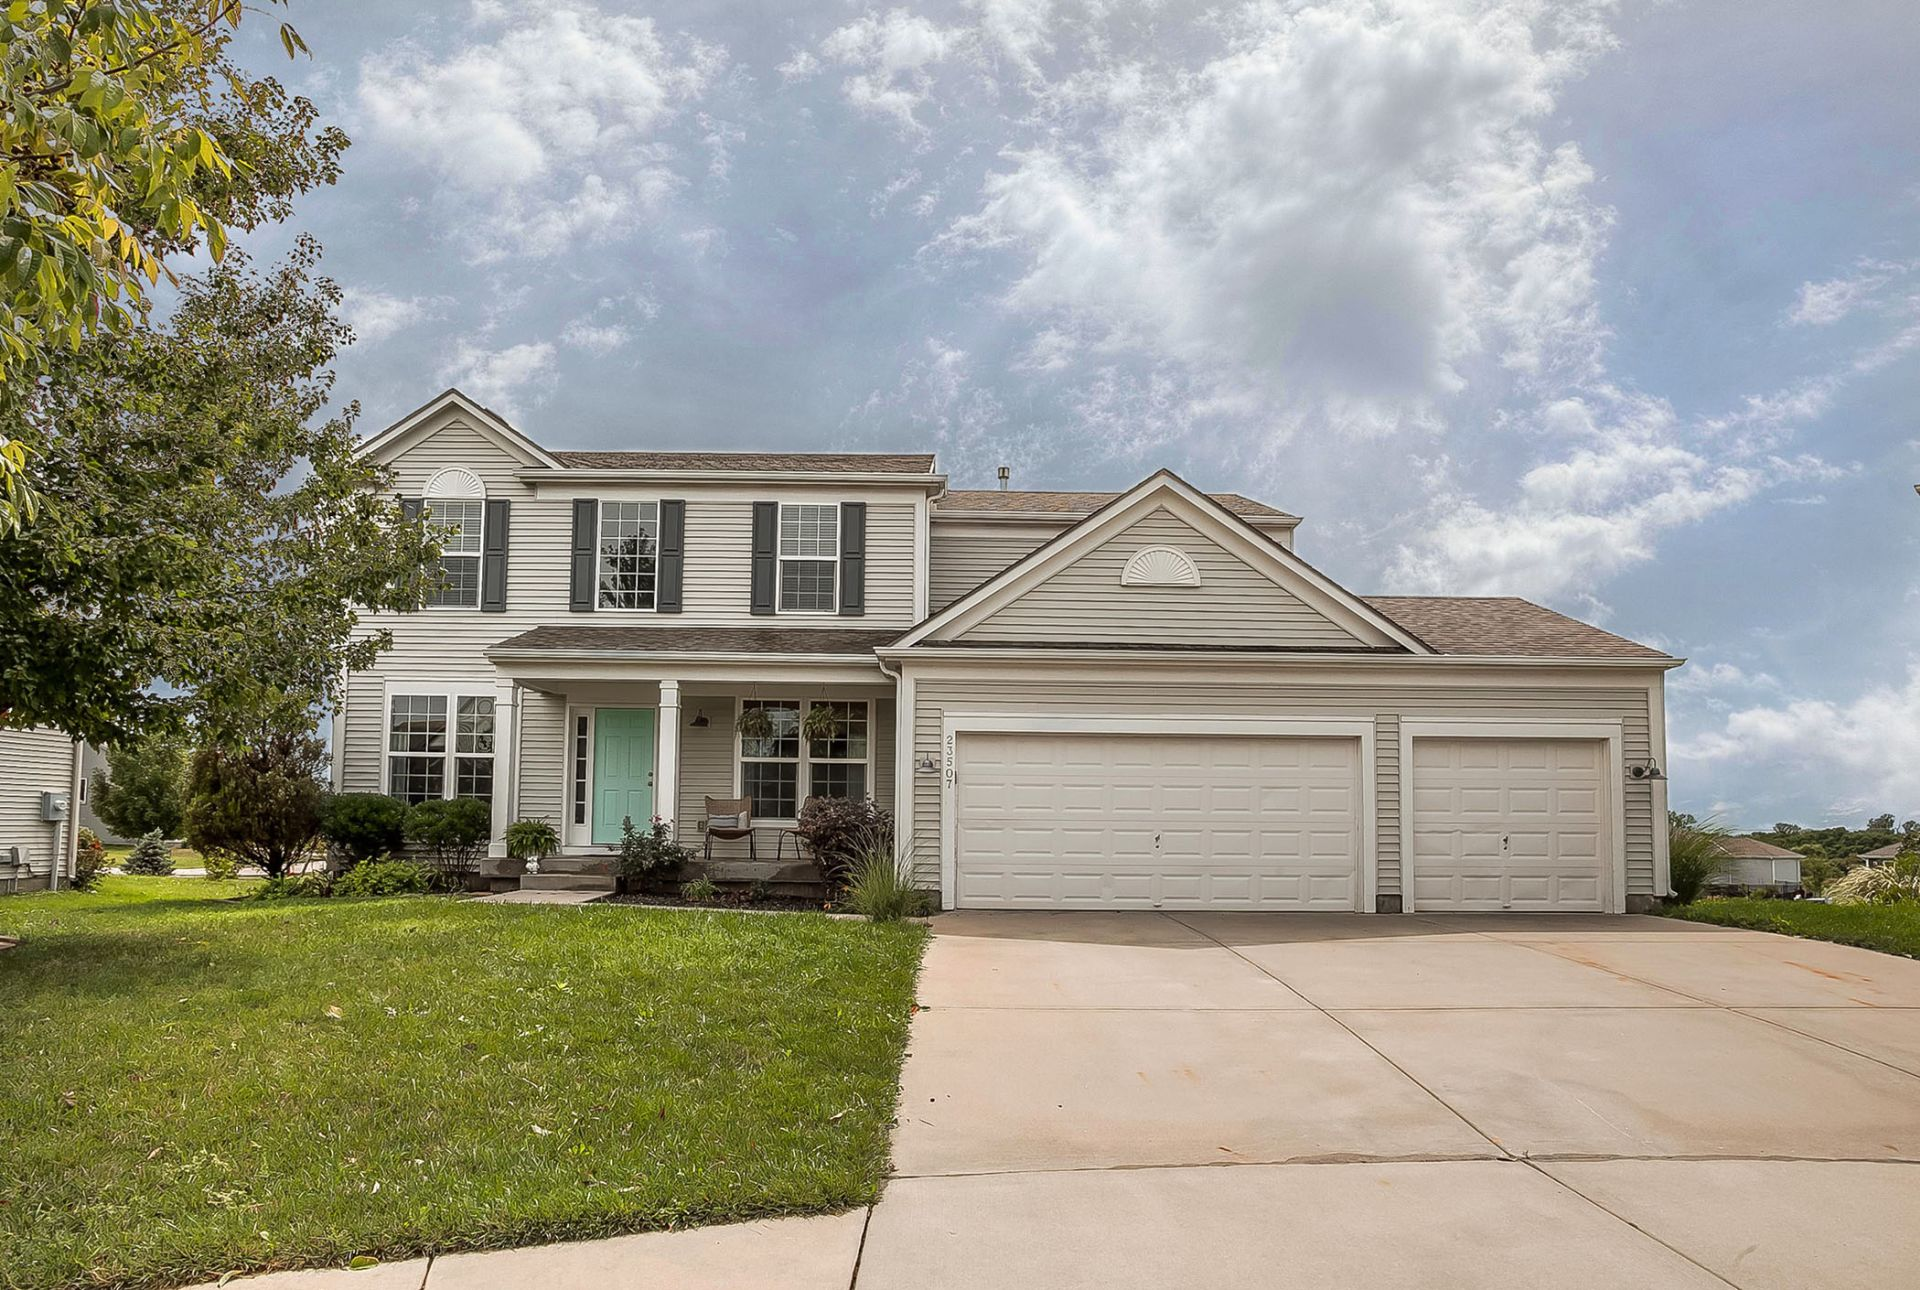 JUST LISTED with First OPEN HOUSE Sun 9/1!